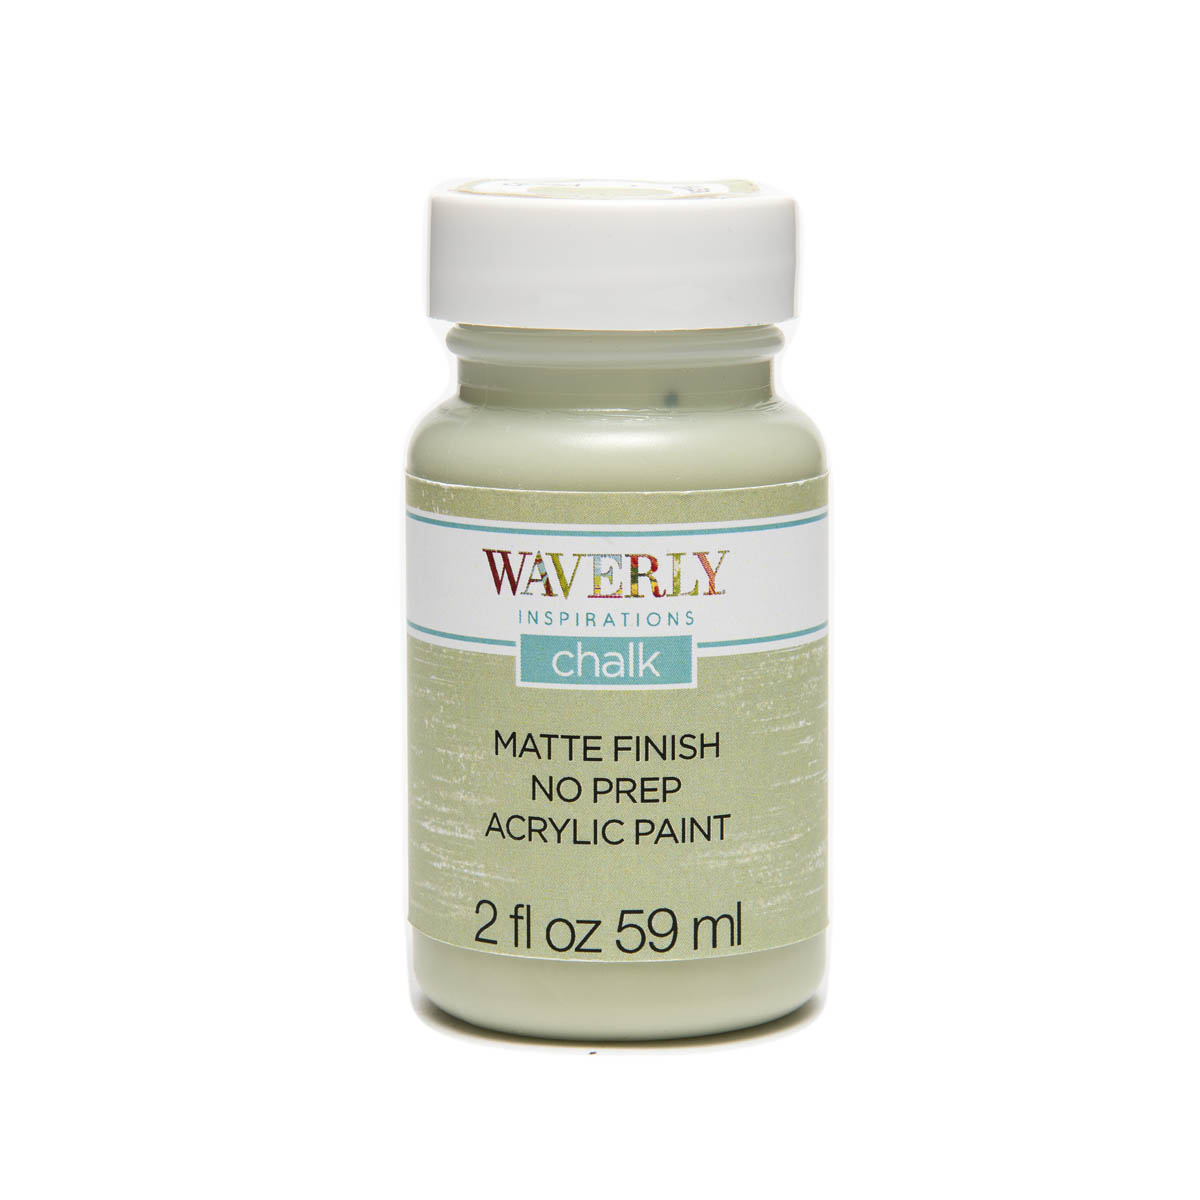 Waverly ® Inspirations Chalk Finish Acrylic Paint - Celery, 2 oz. - 60885E